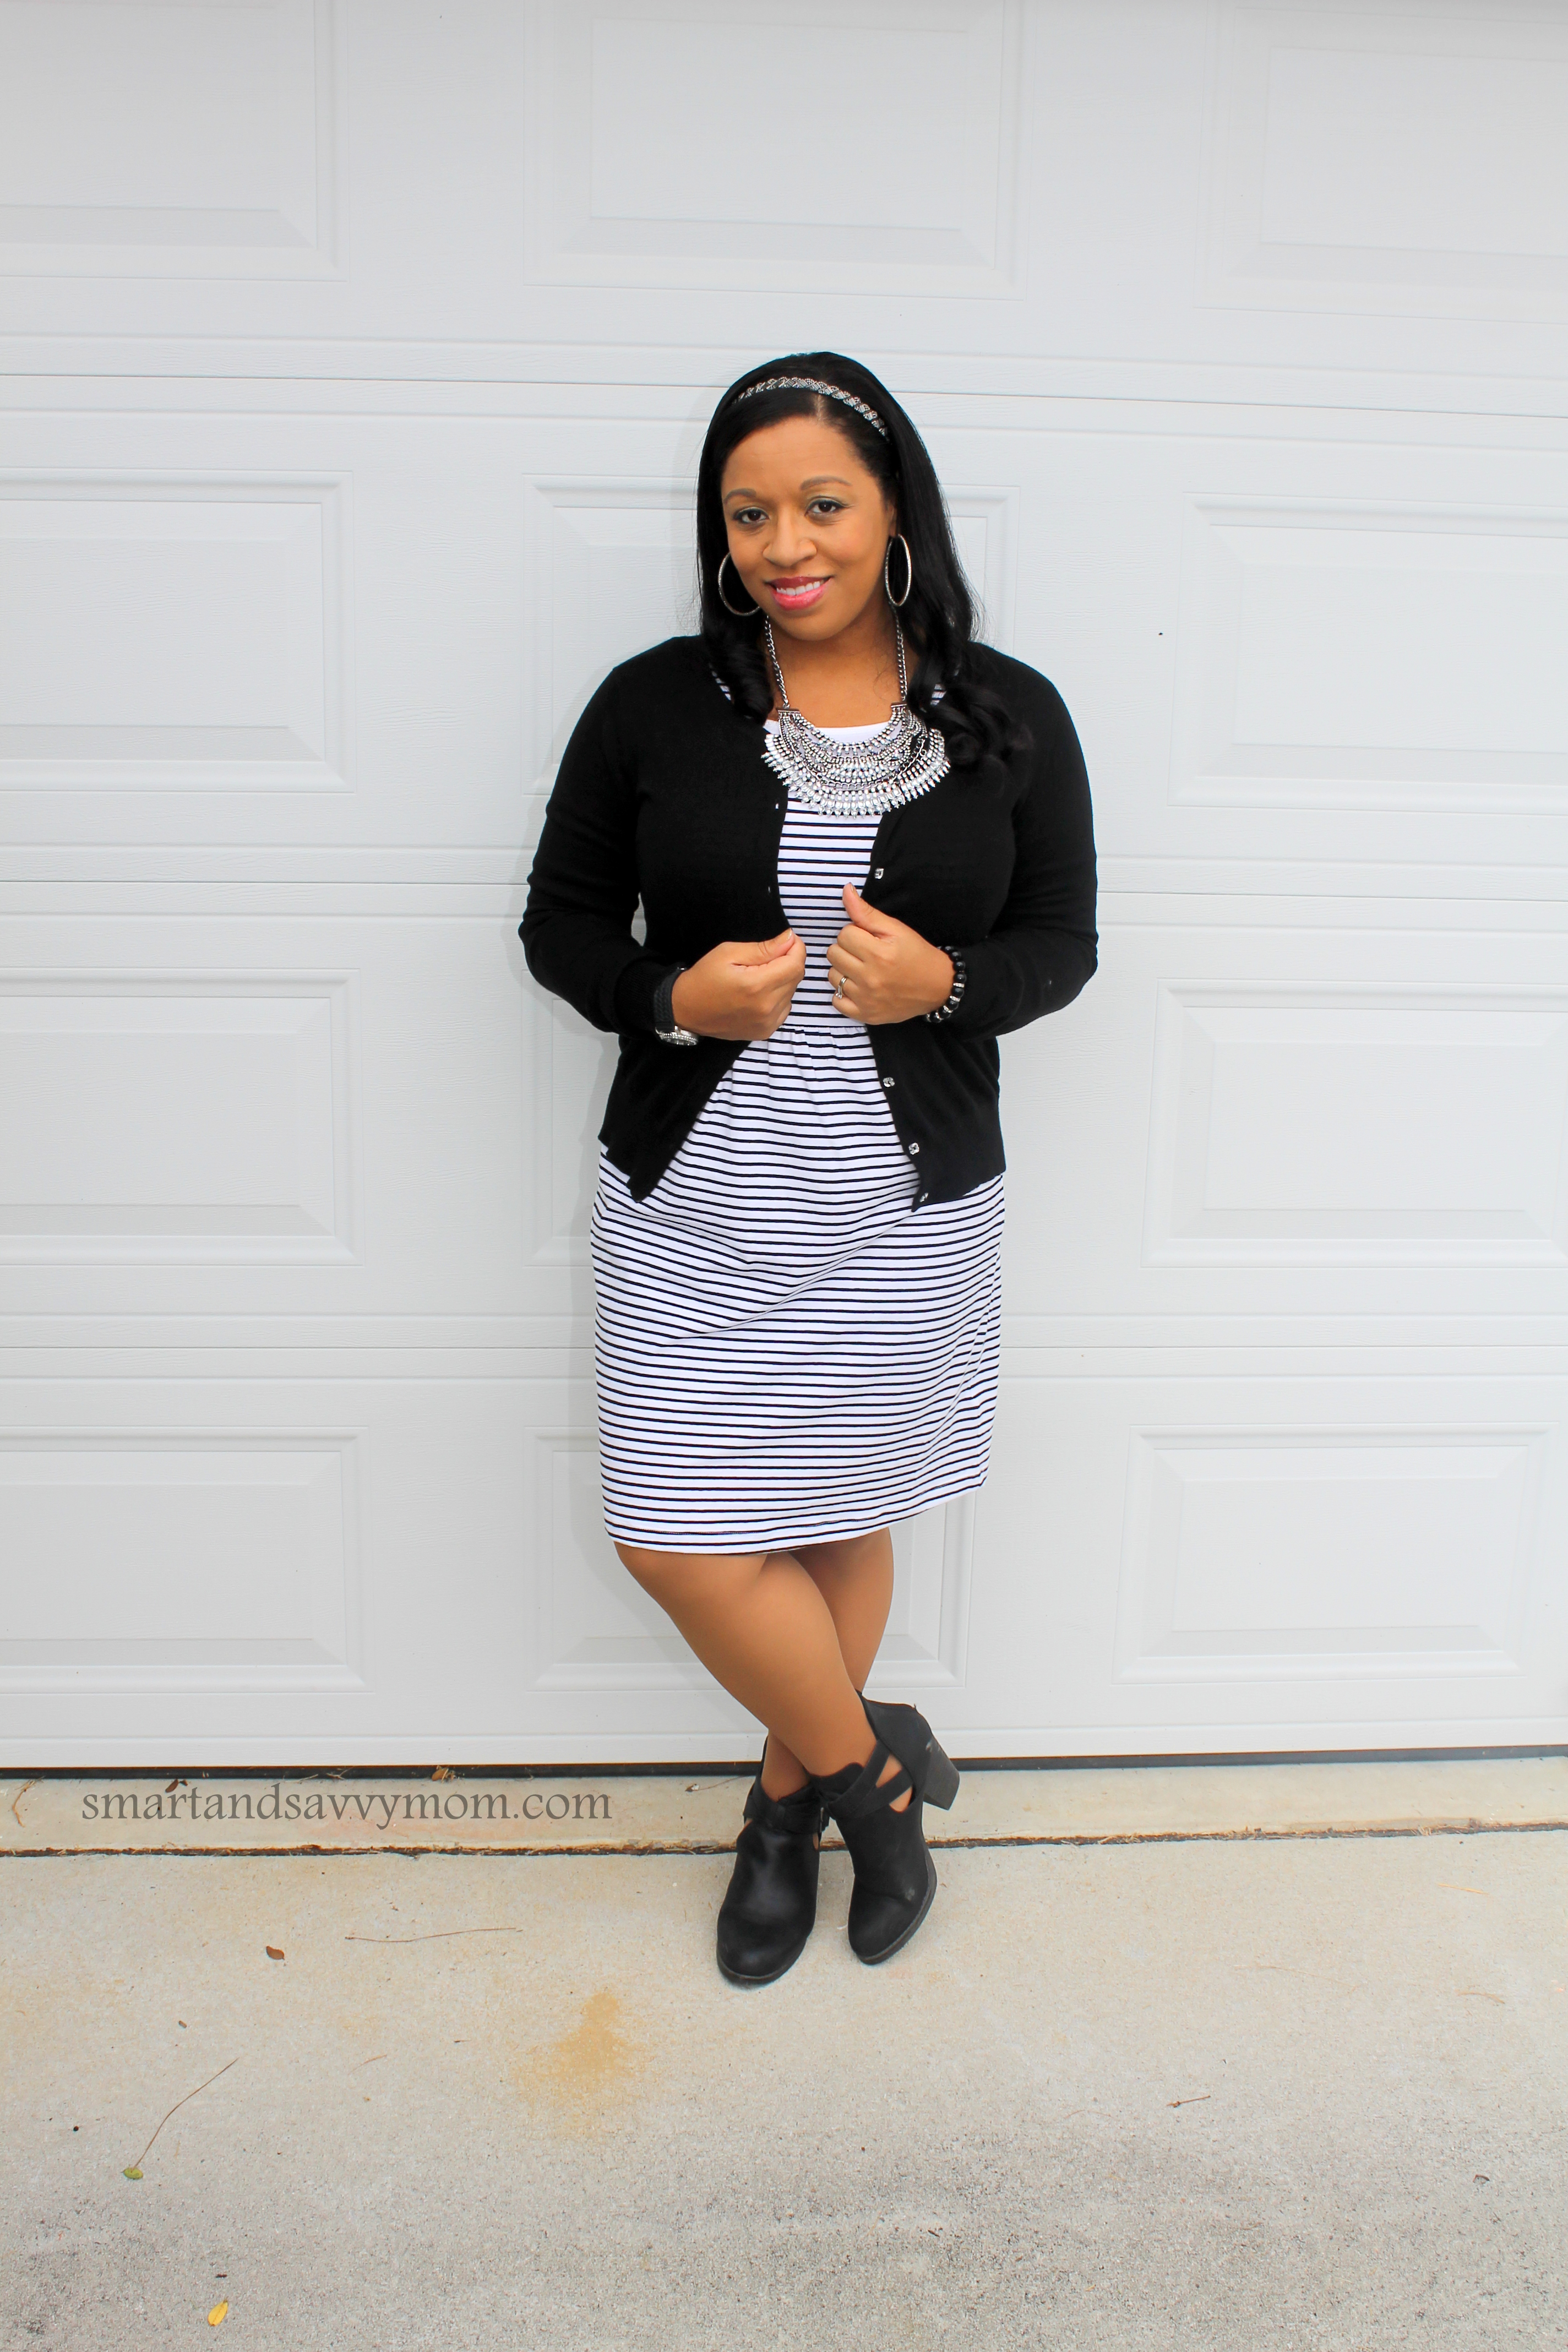 old navy black and white striped dress with black cardigan easy modest outfit